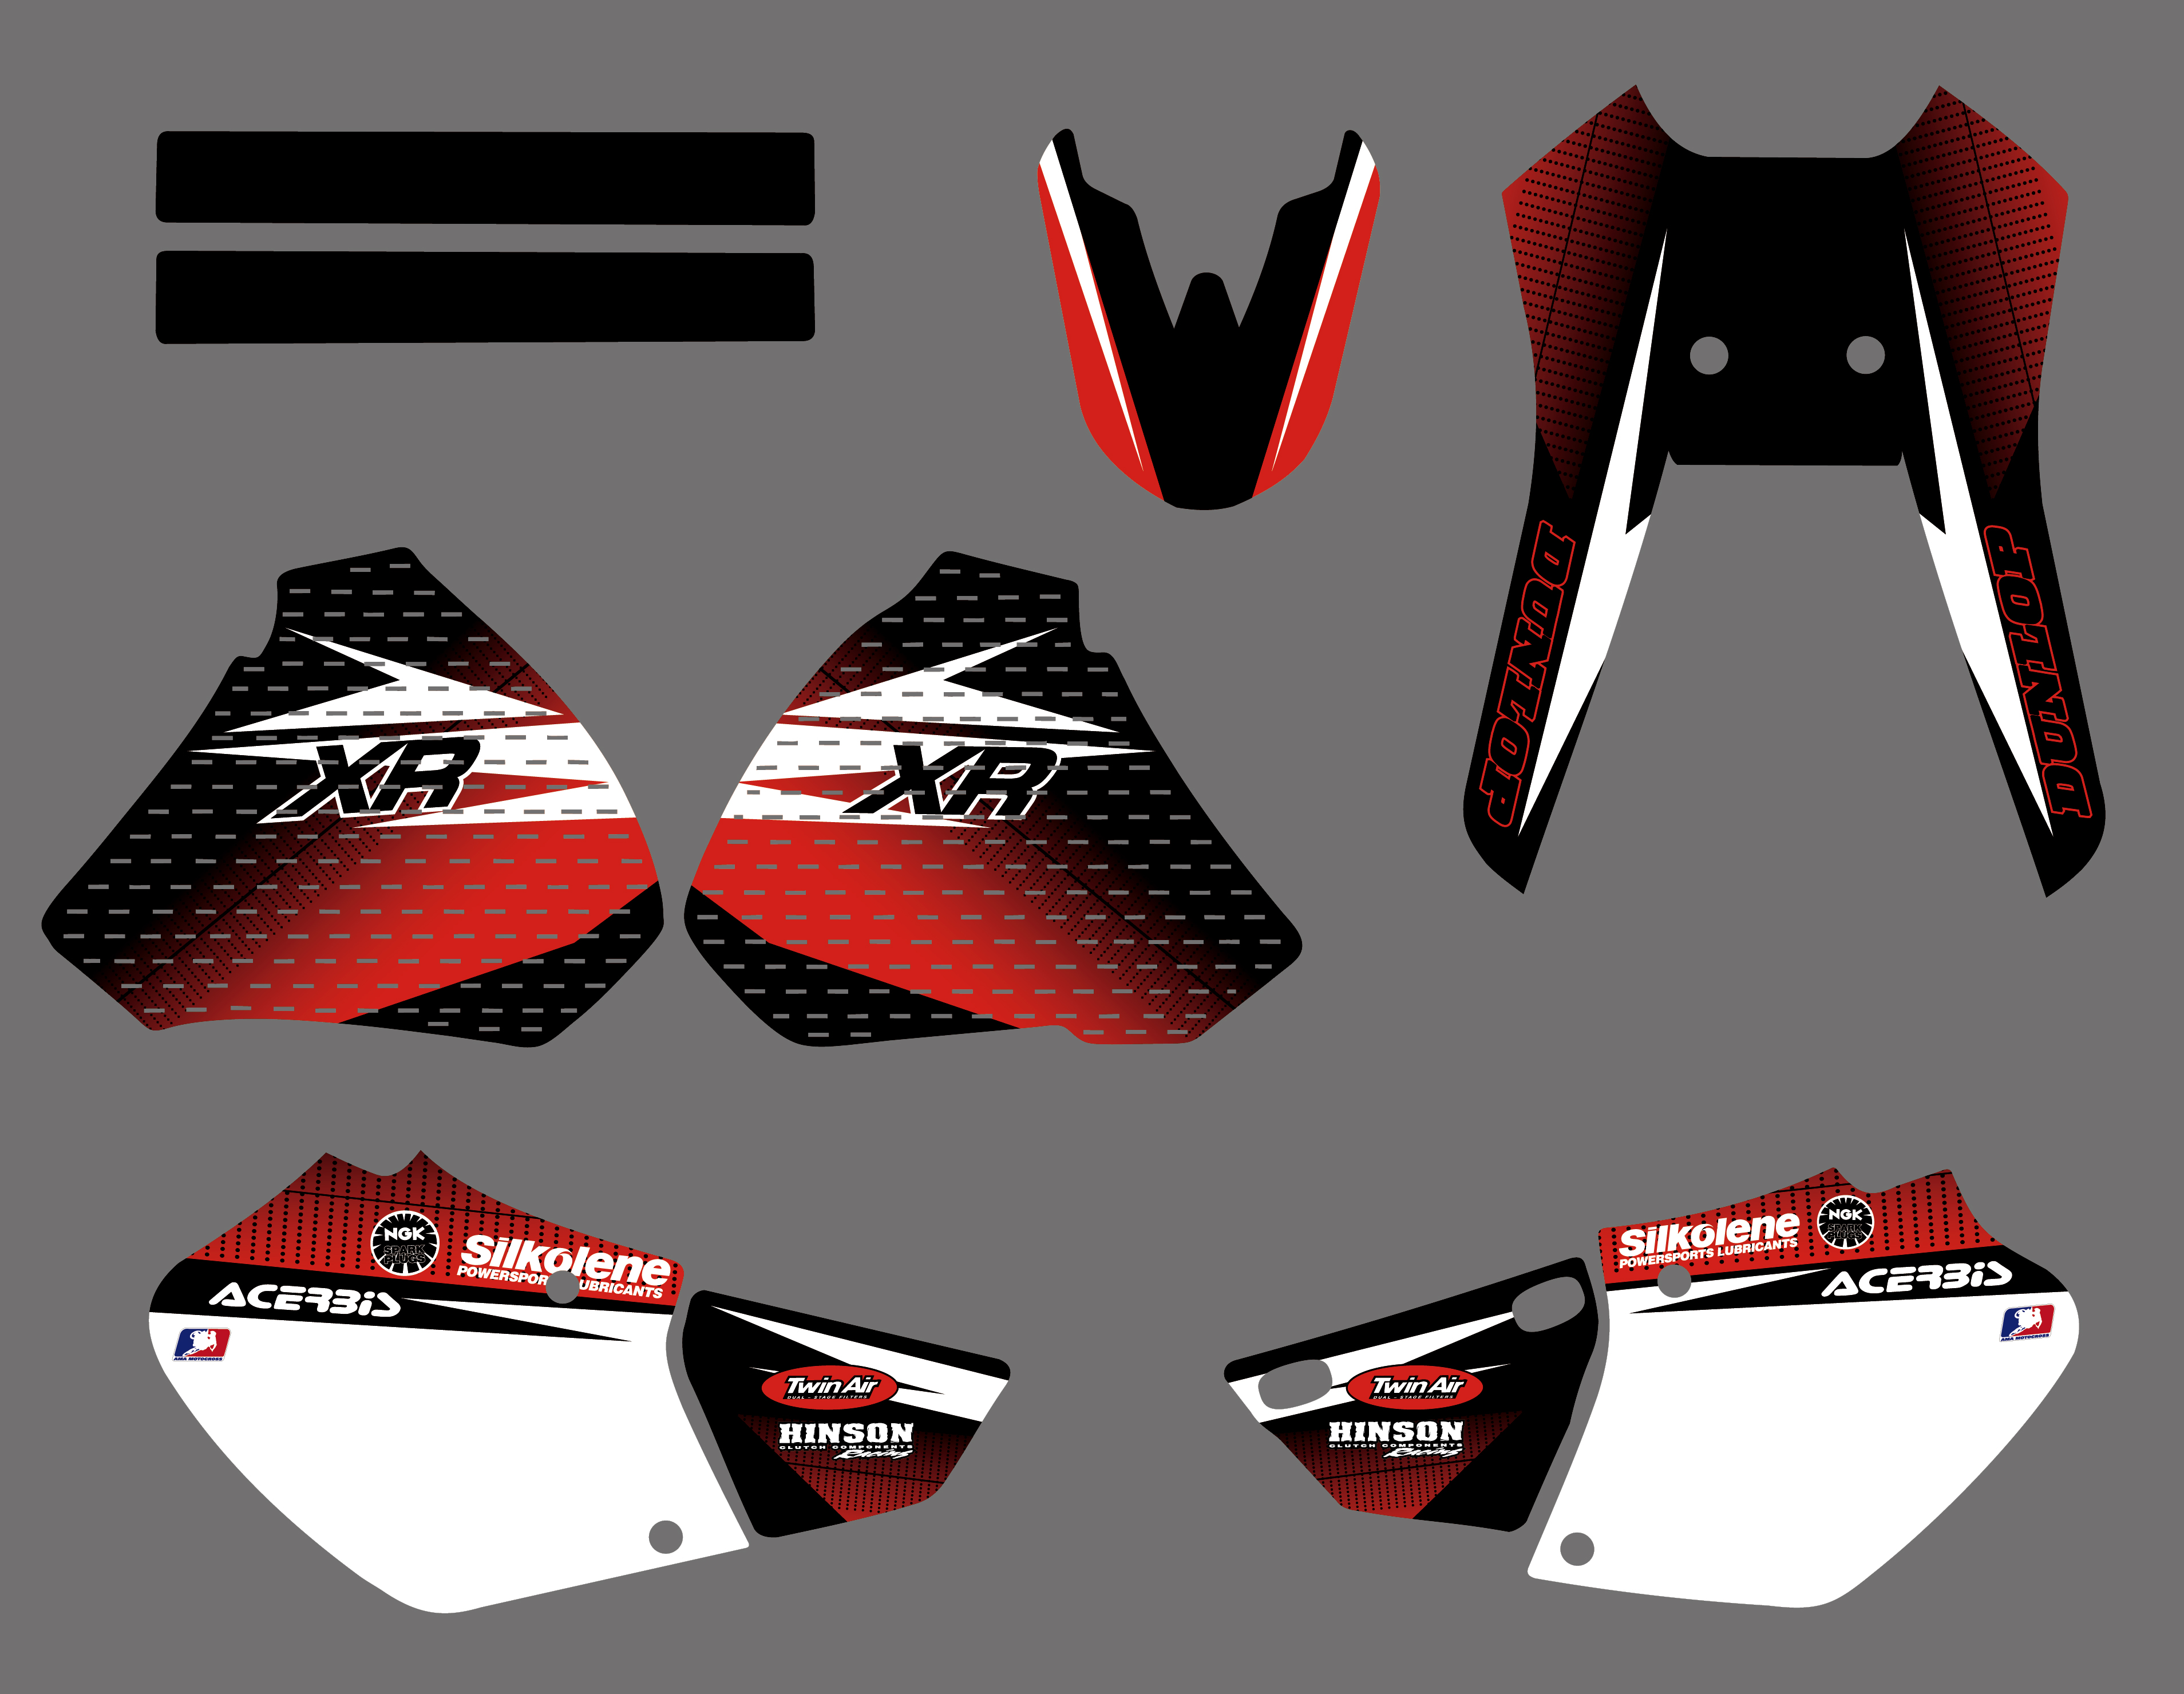 Team Graphic Background Decals Stickers Kit For Honda XR250 XR400 XR 250 400 1996 1997 1998 1999 2000 2001 2002 2003 2004